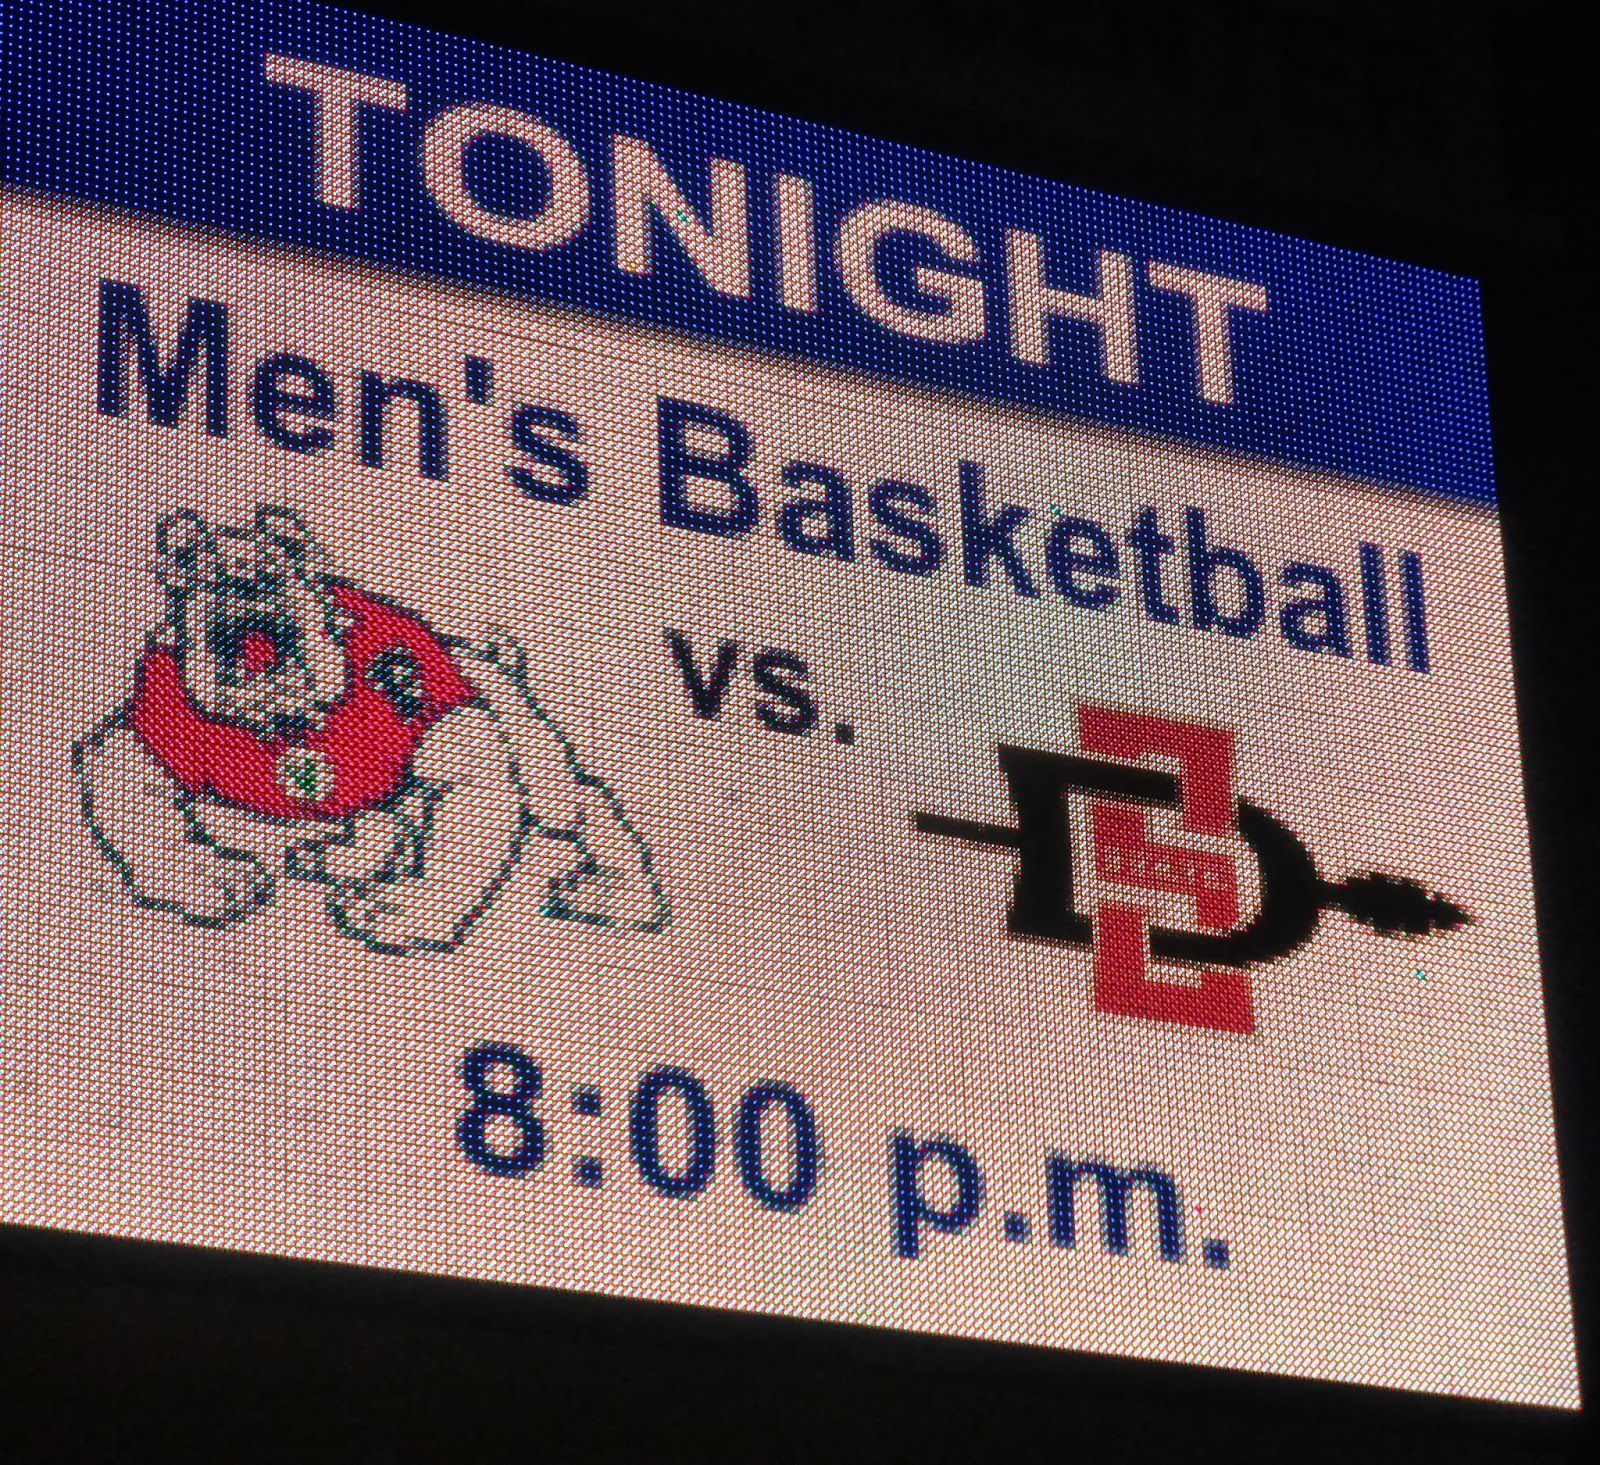 Sports Road Trips: San Diego State Aztecs 57 at Fresno State